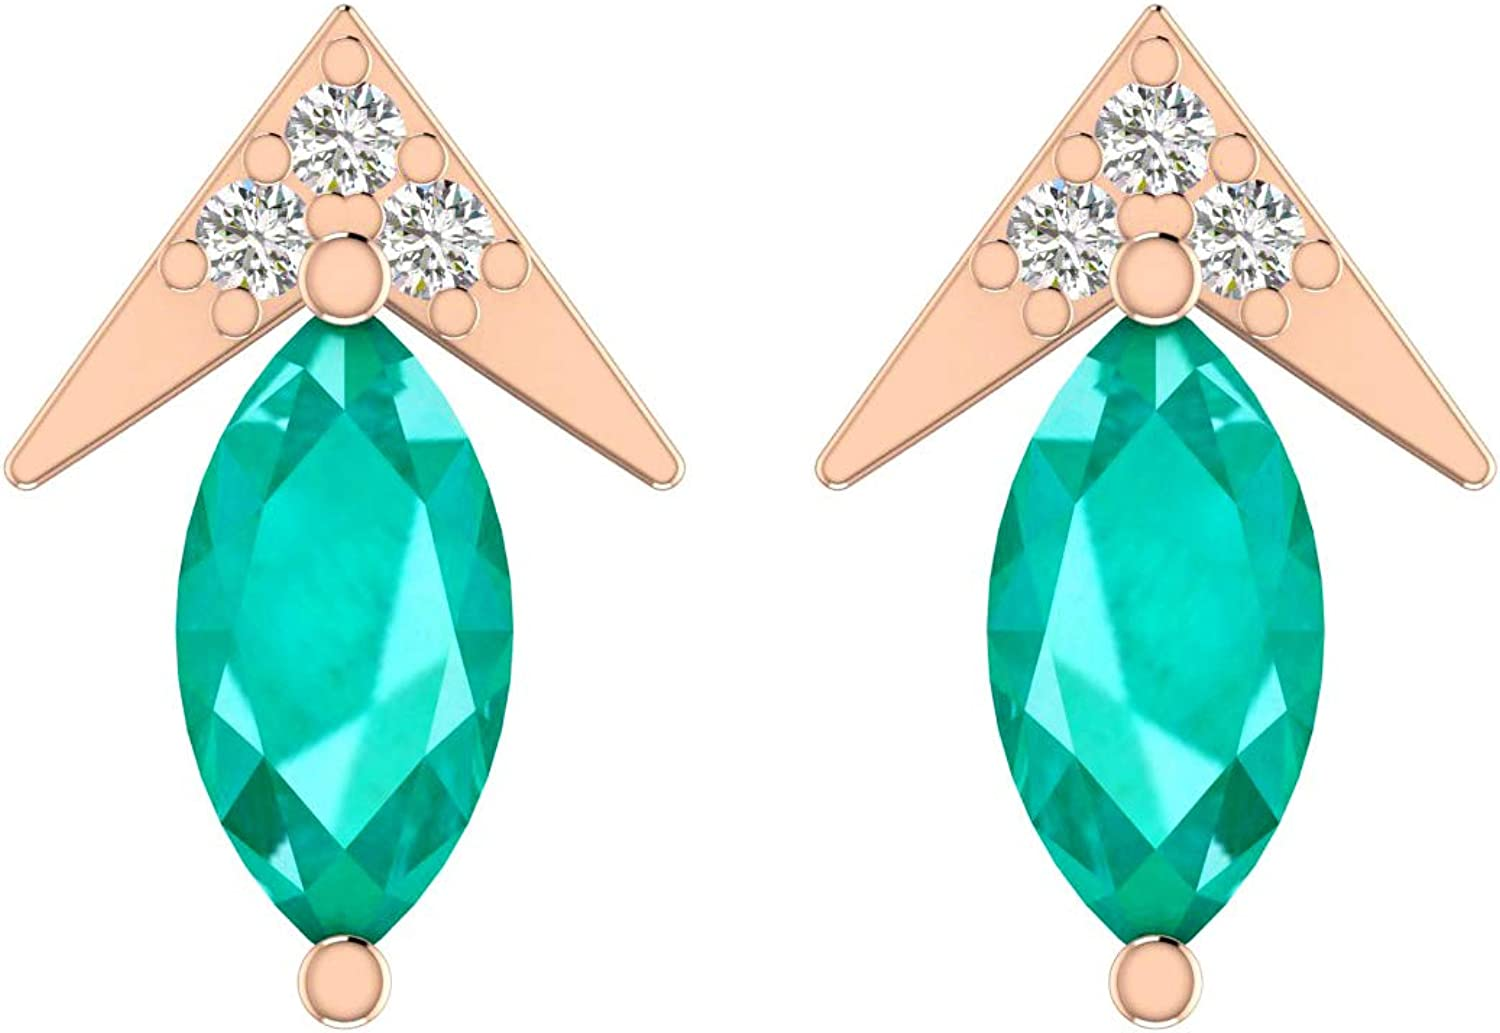 ASHNE JEWELS IGI Certified Natural White Diamond (I1-I2 Clarity and G-H Color) Stud Earrings Made in Solid Gold Studded With Natural Emerald For Women and Girls